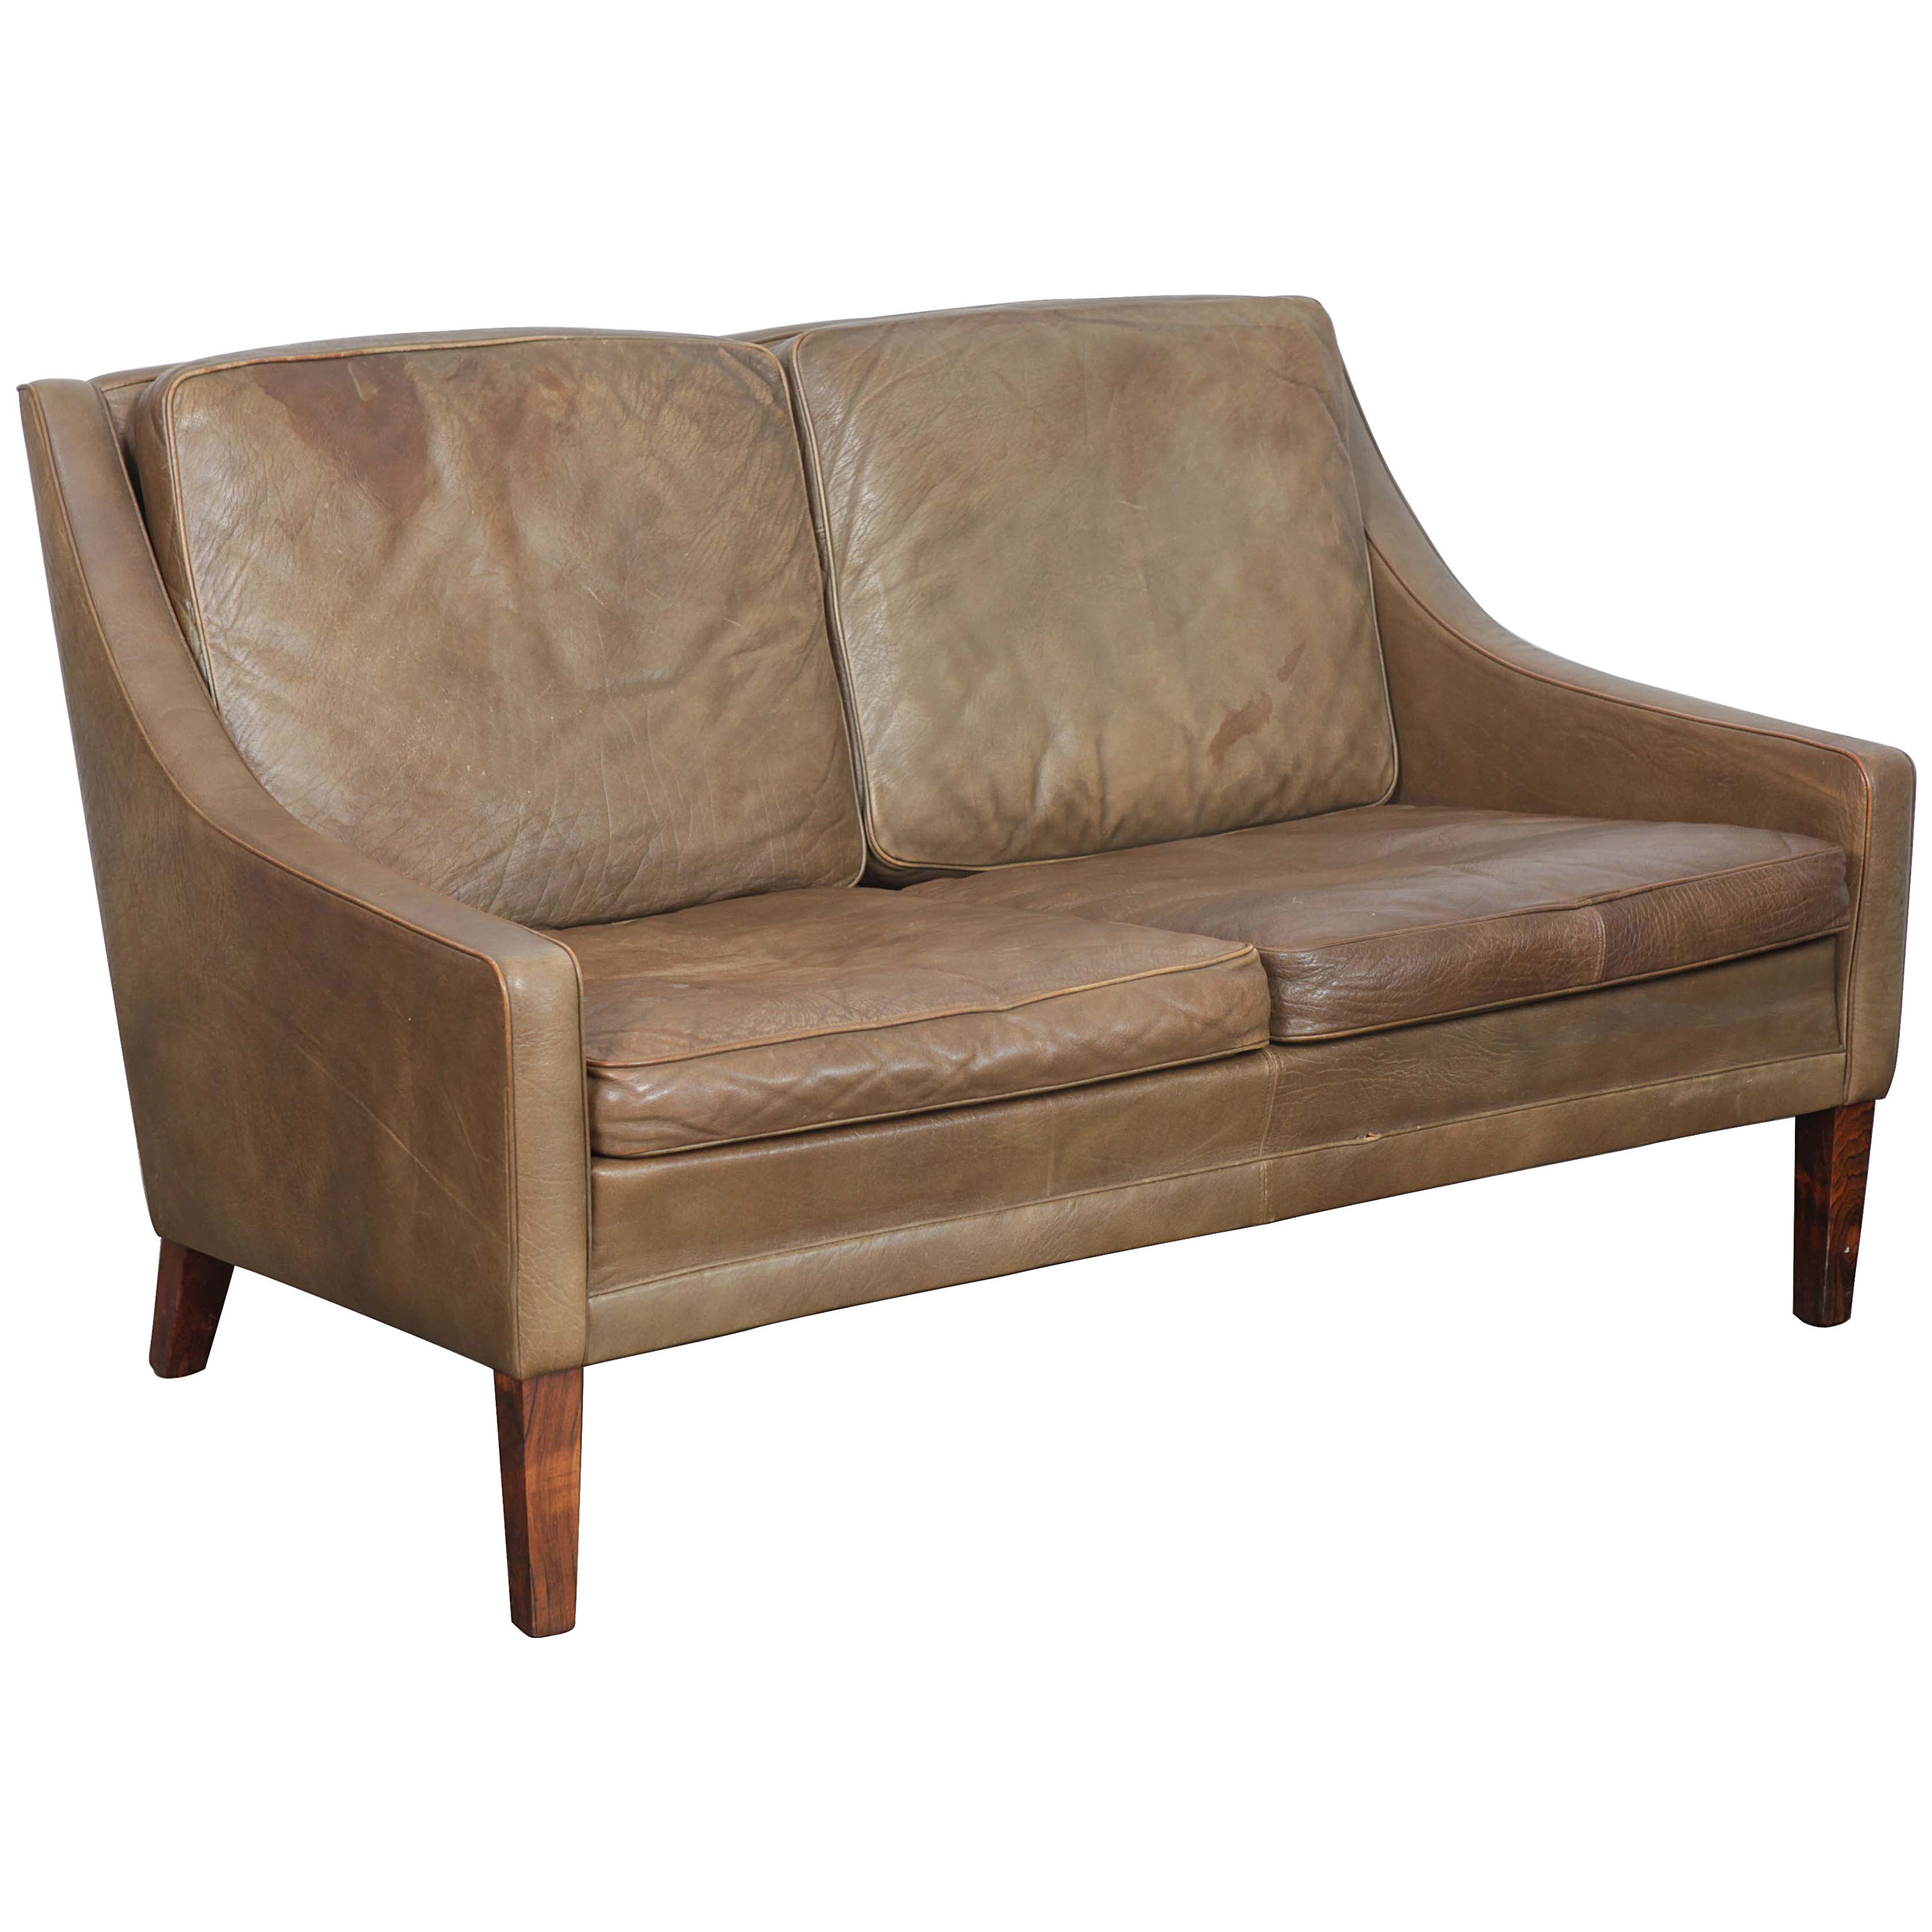 Danish Mid Century Modern 2 Seat Brown Leather Sofa For Sale At 1stdibs